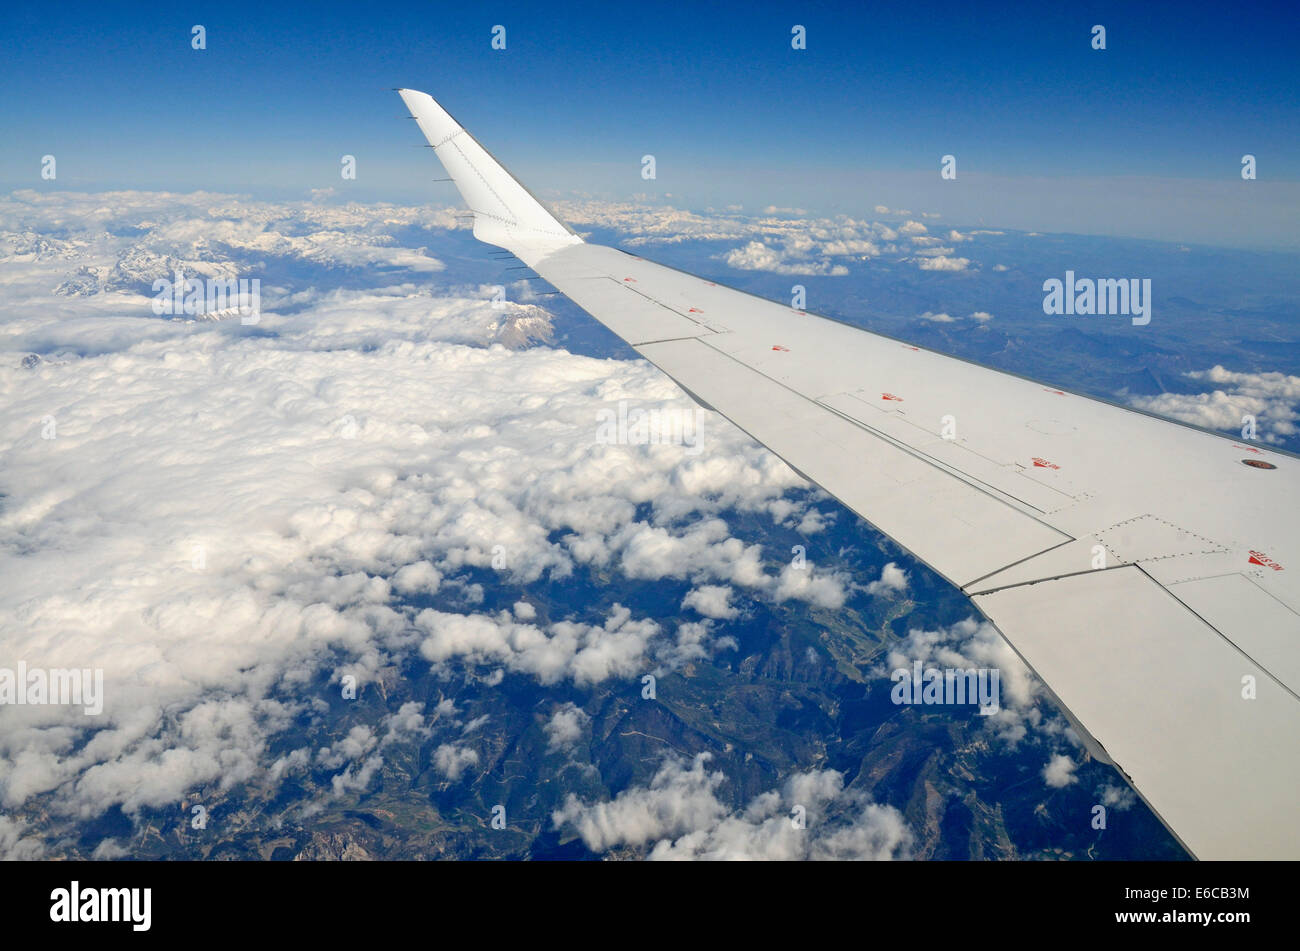 Wing of flying airplane over French Alps, France, Europe - Stock Image